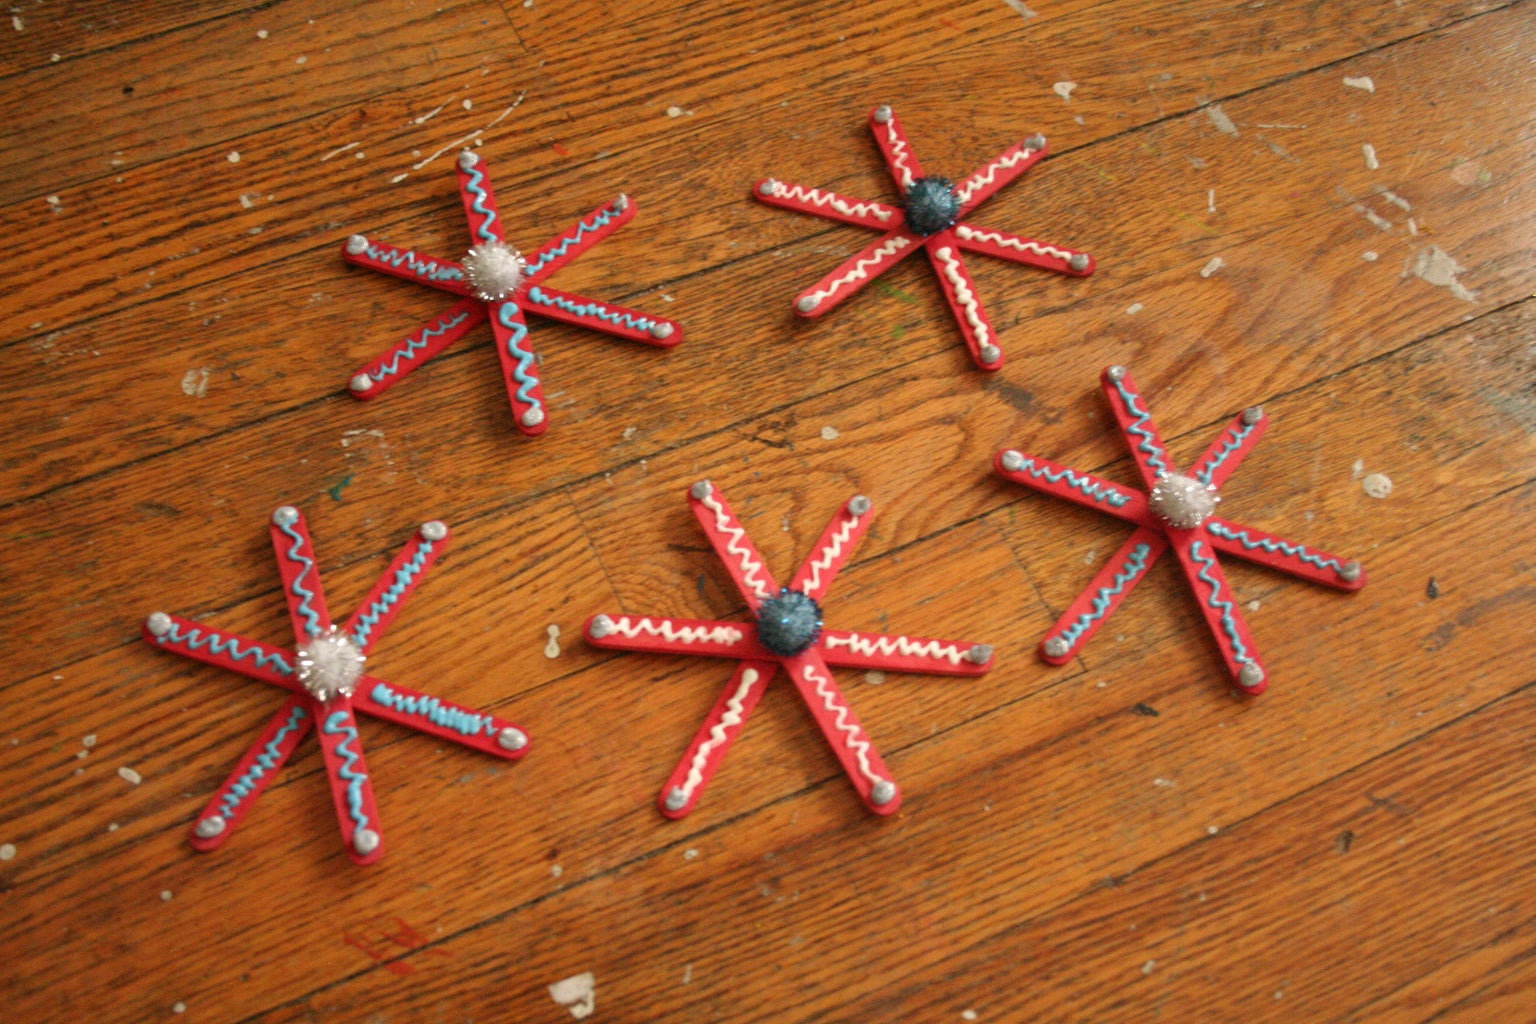 Decorate the Snowflakes